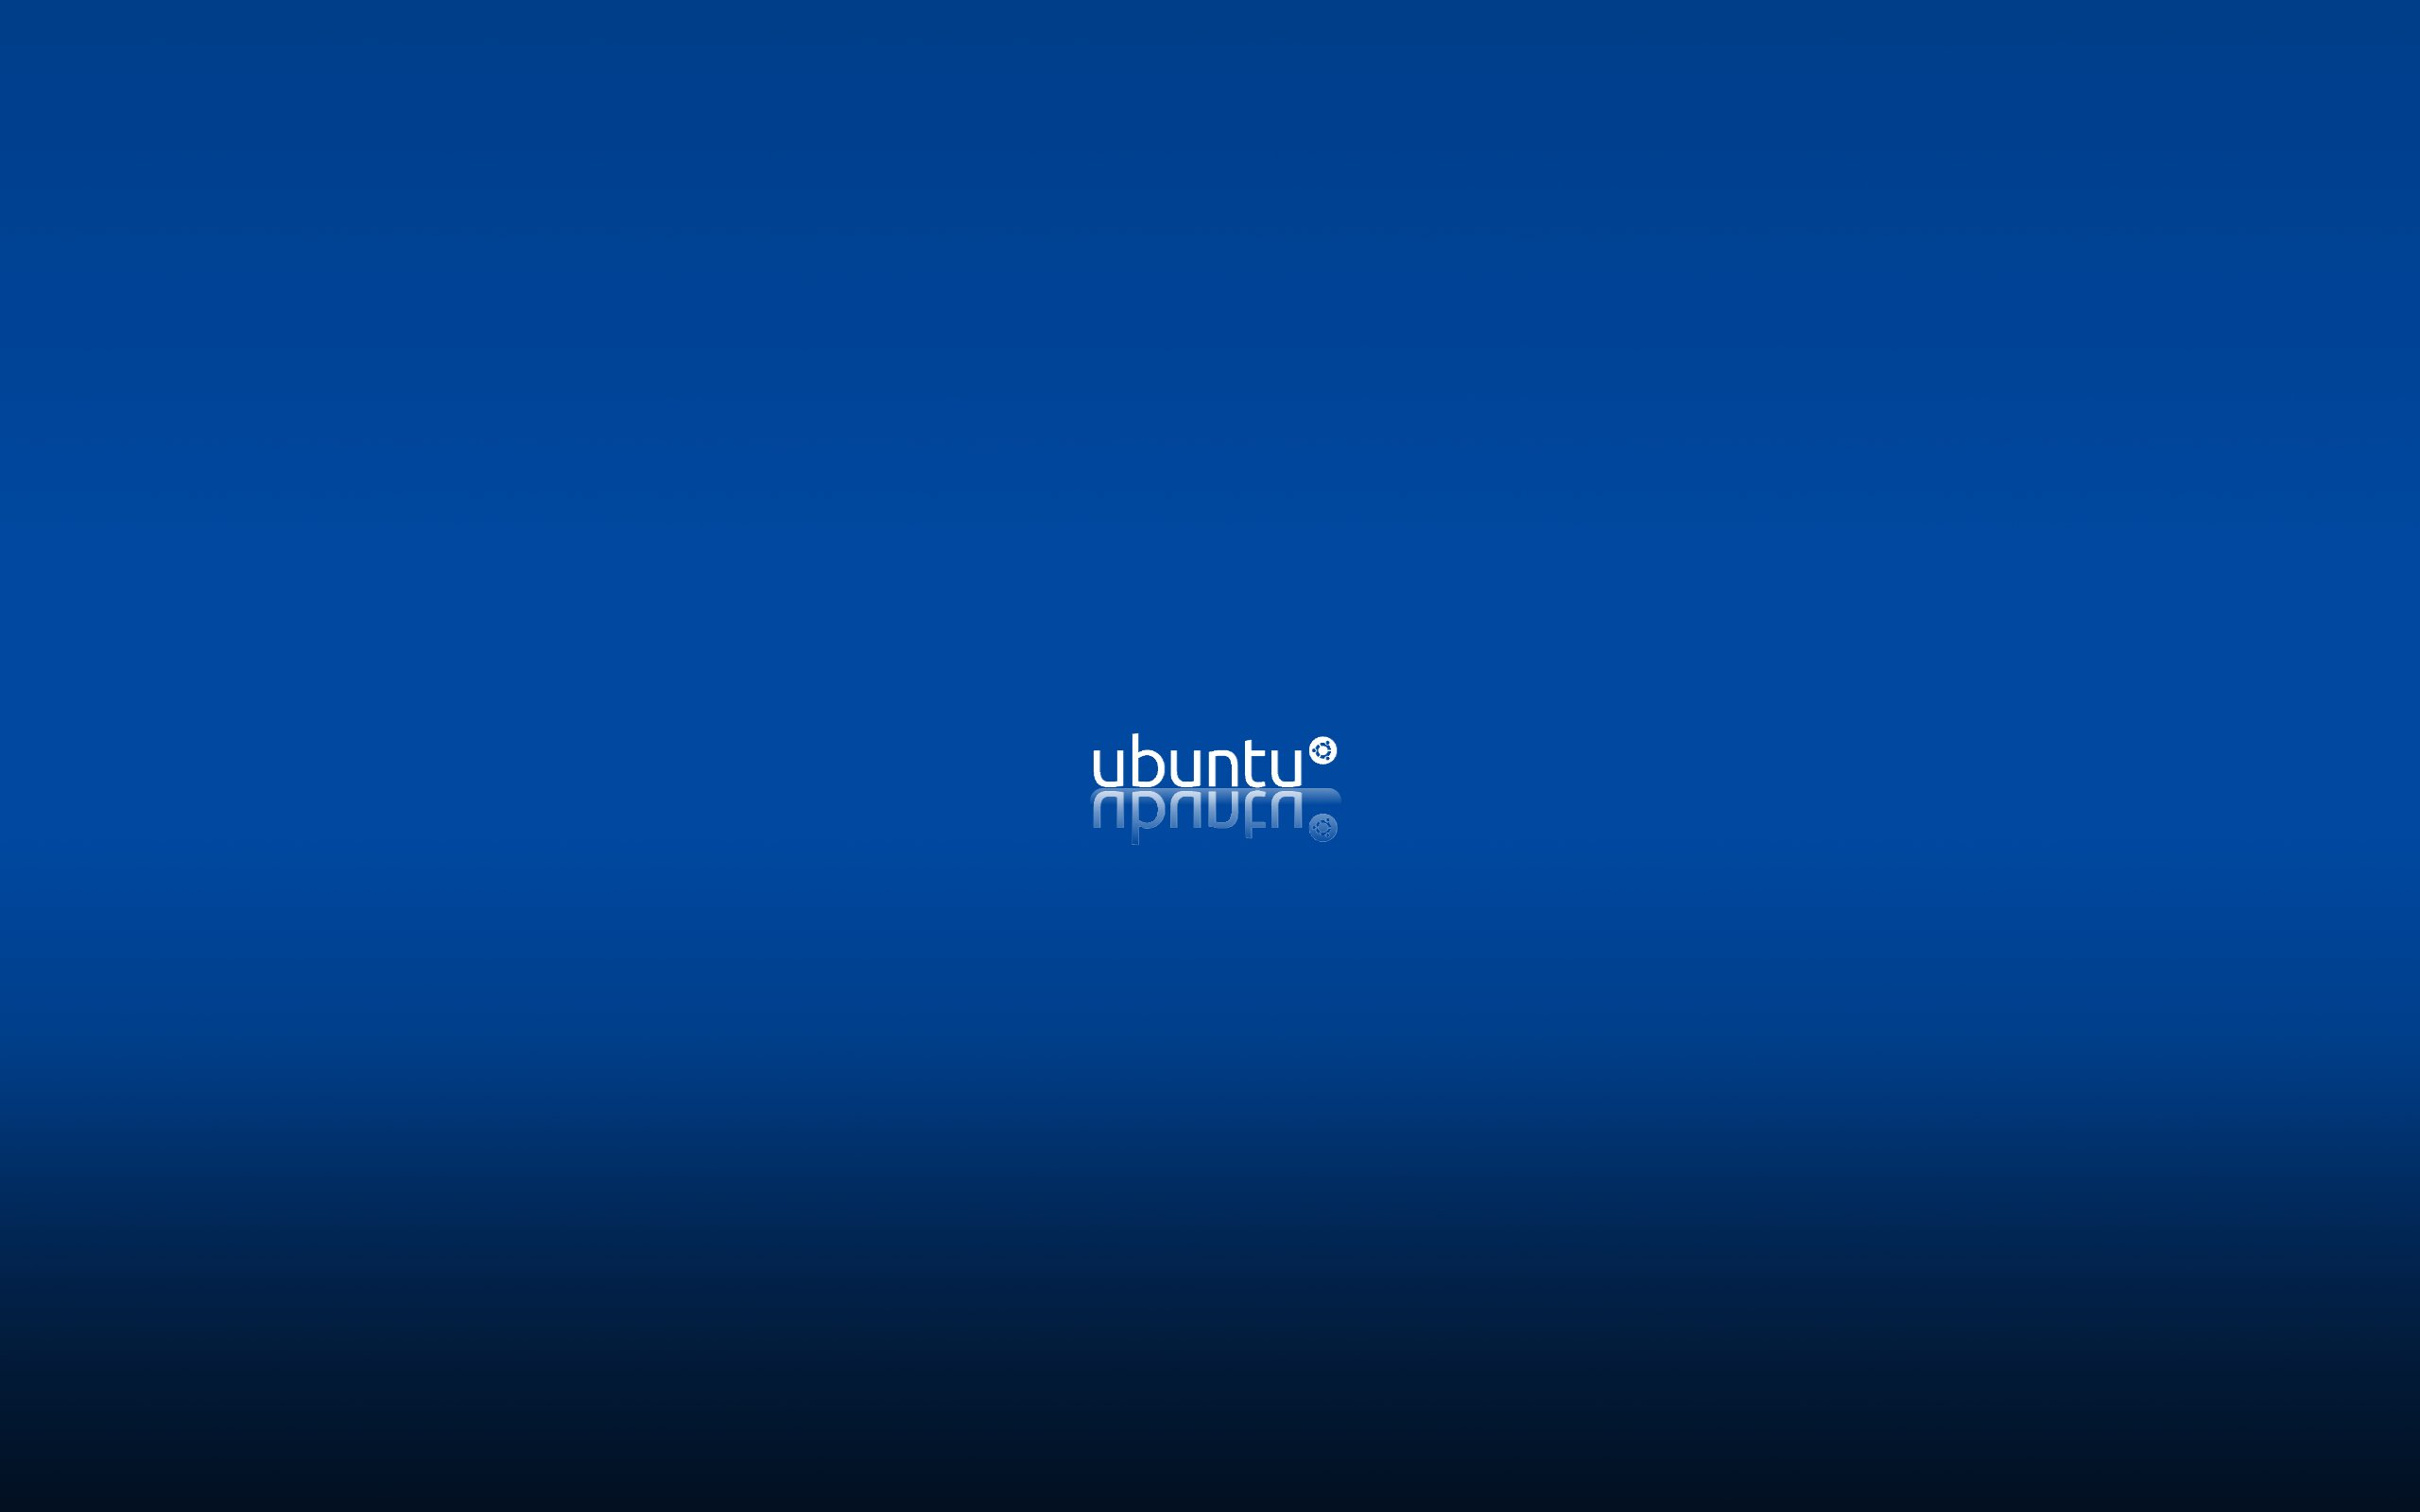 ubuntu blue wallpaper full hd a2u zen meditation wallpaper high 2560x1600